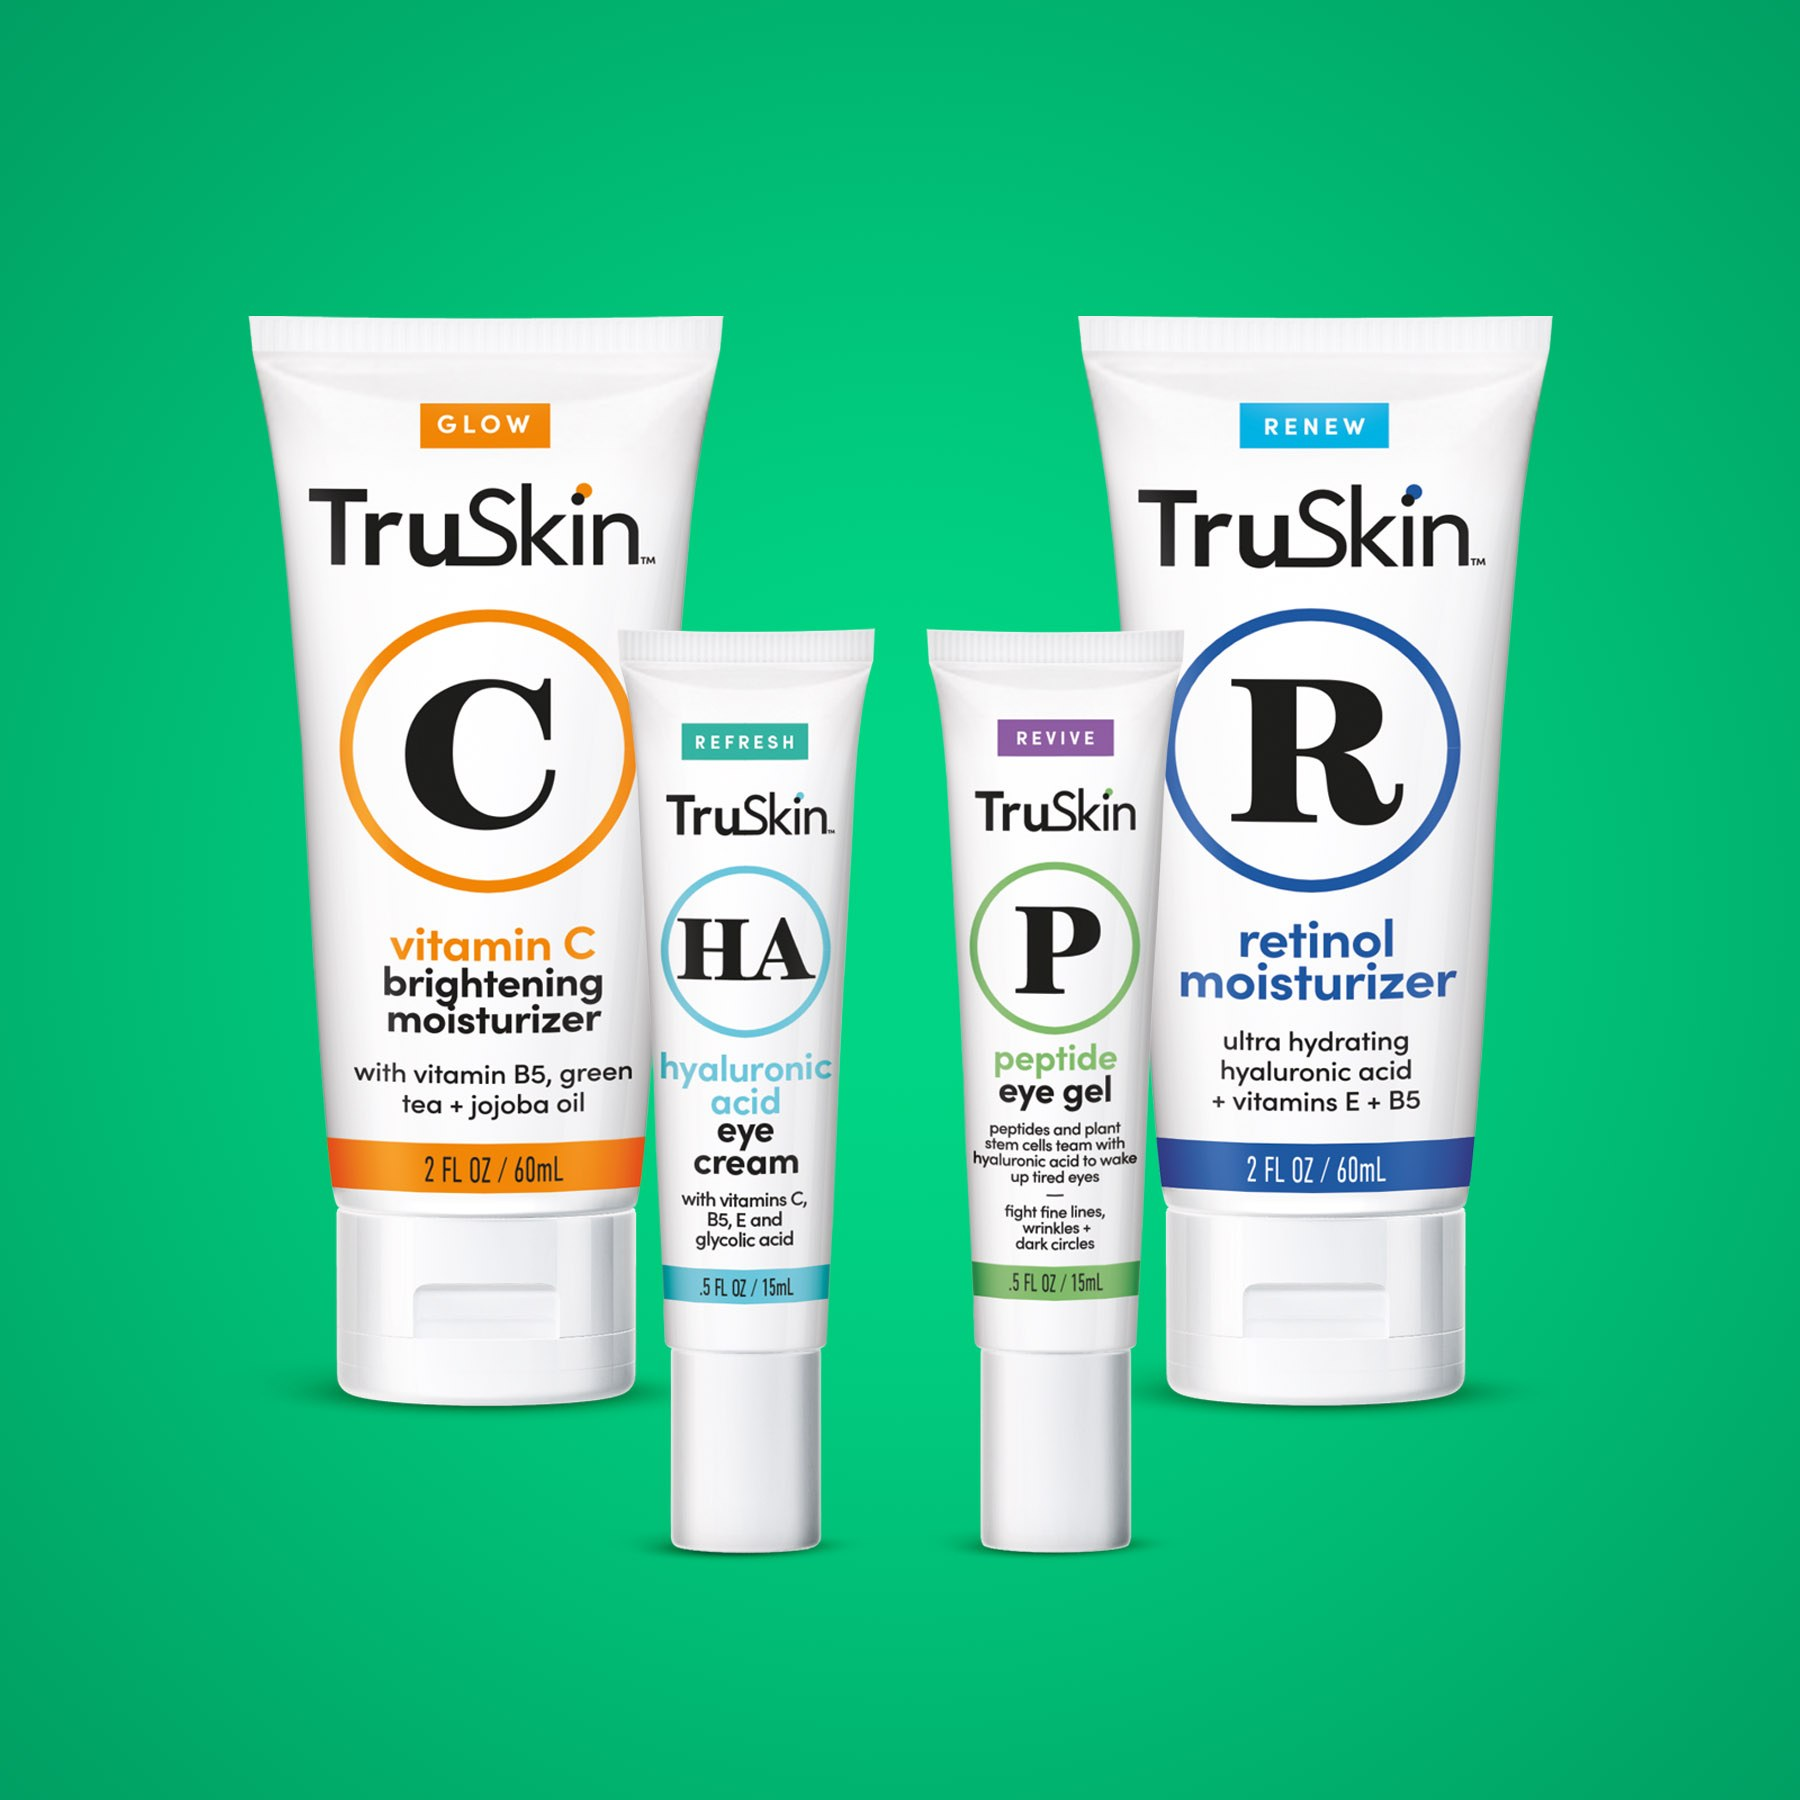 TruSkin Moisturizers and Creams Package Design